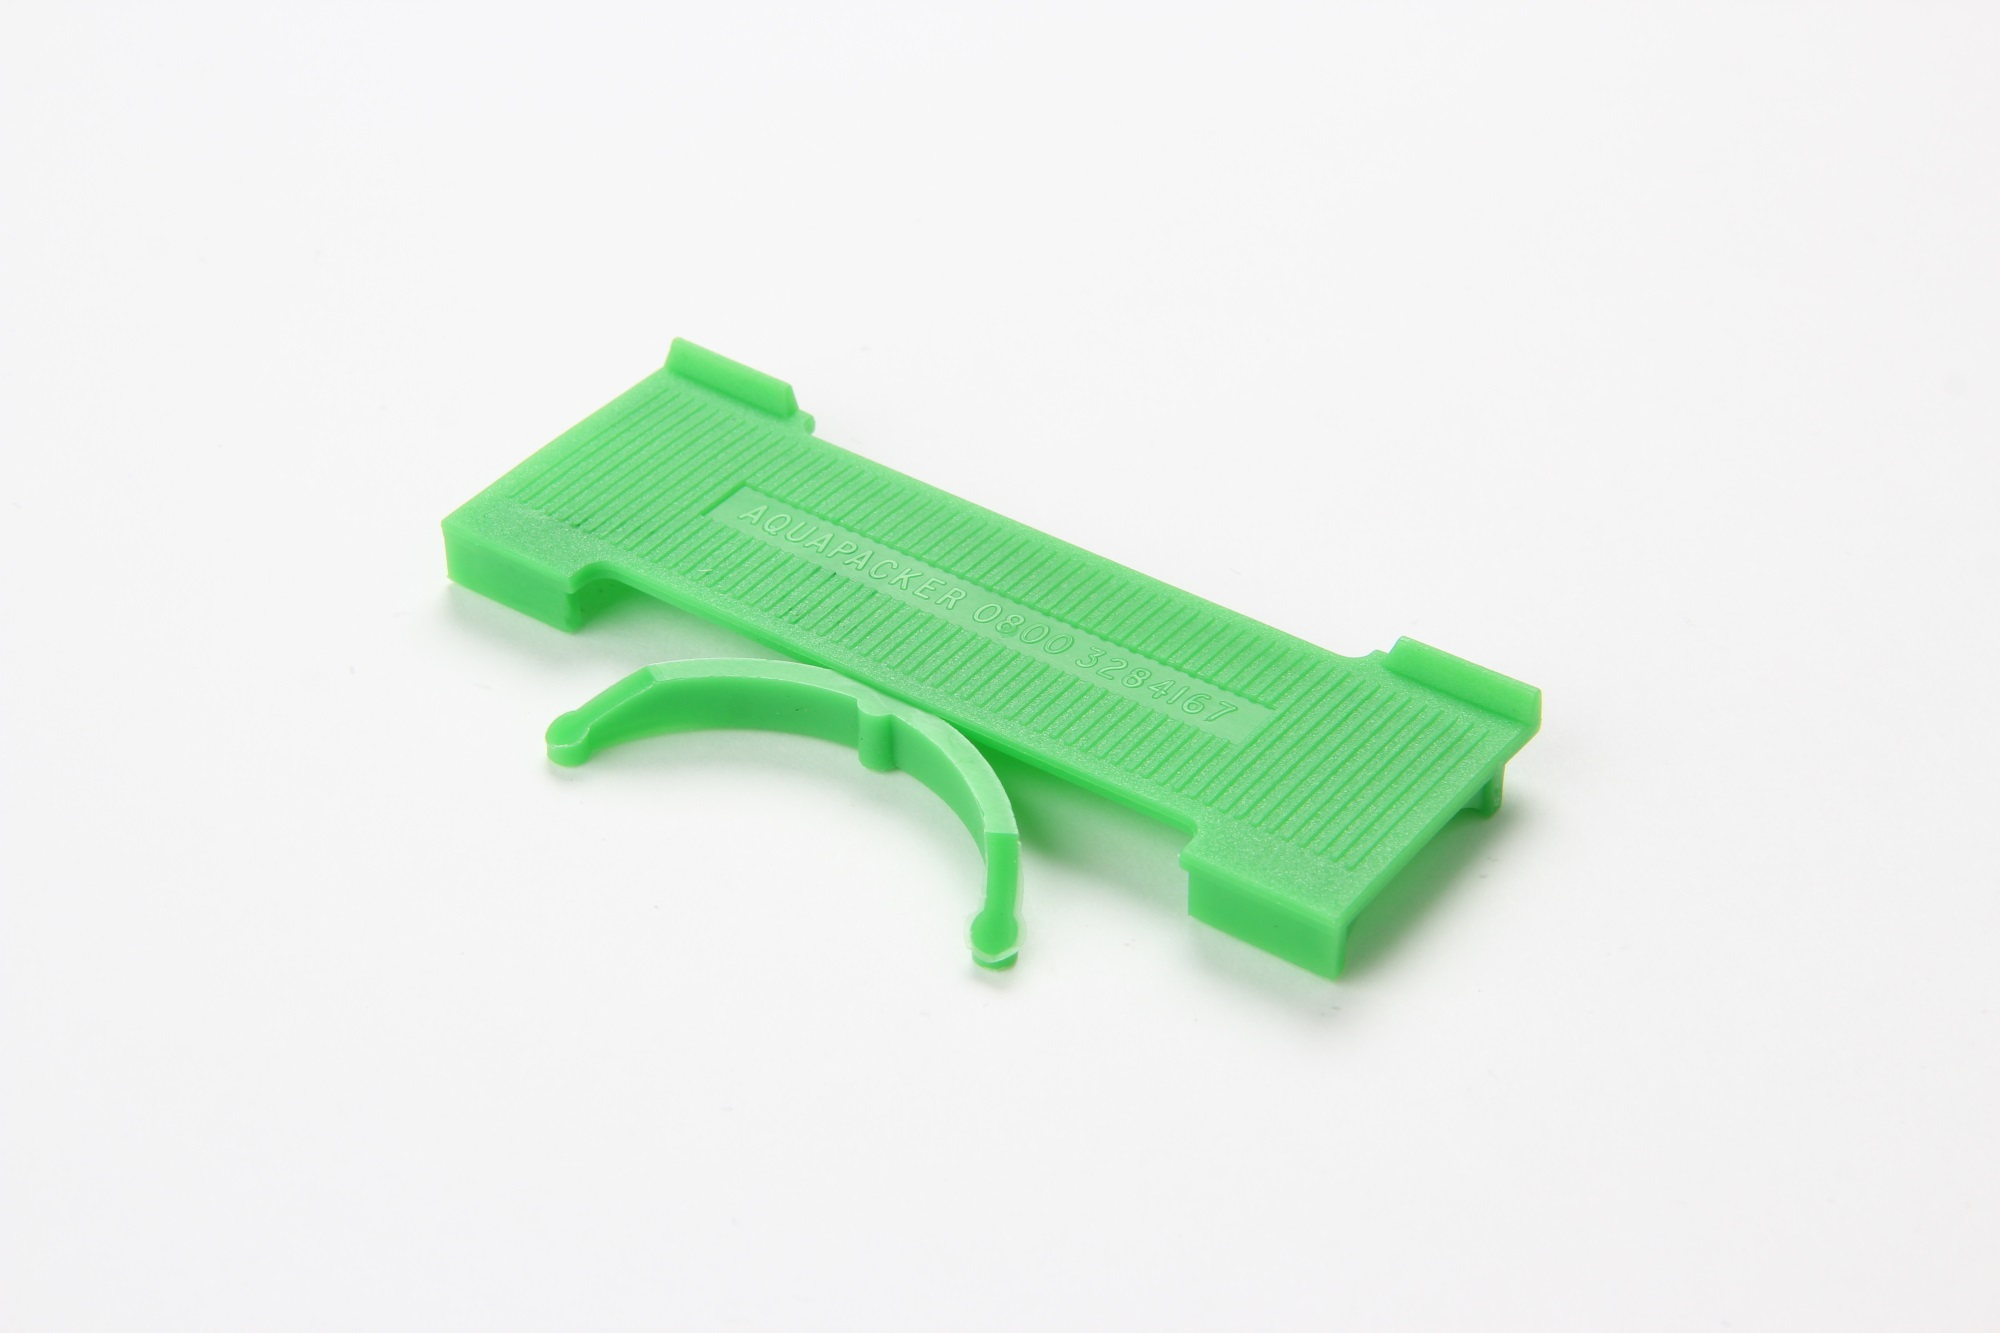 KlassePACK aquapacker green